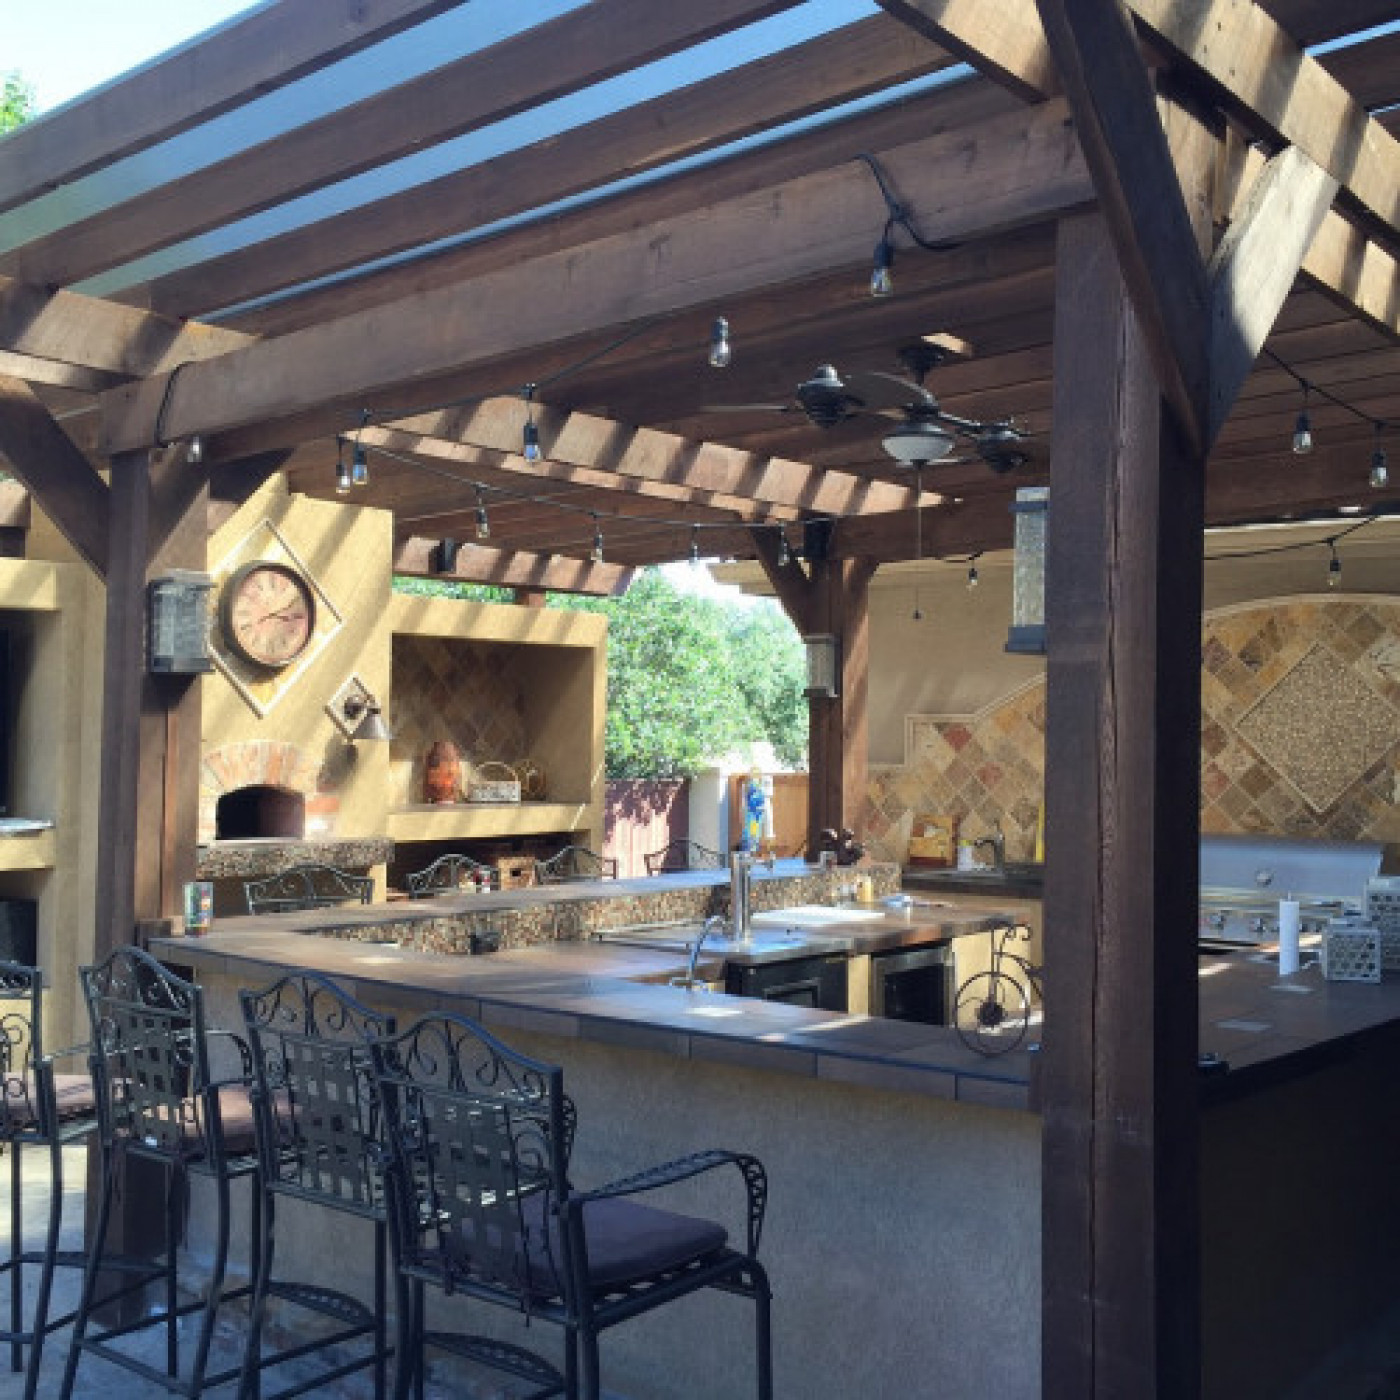 Increase Your Home's Value With Outdoor Living